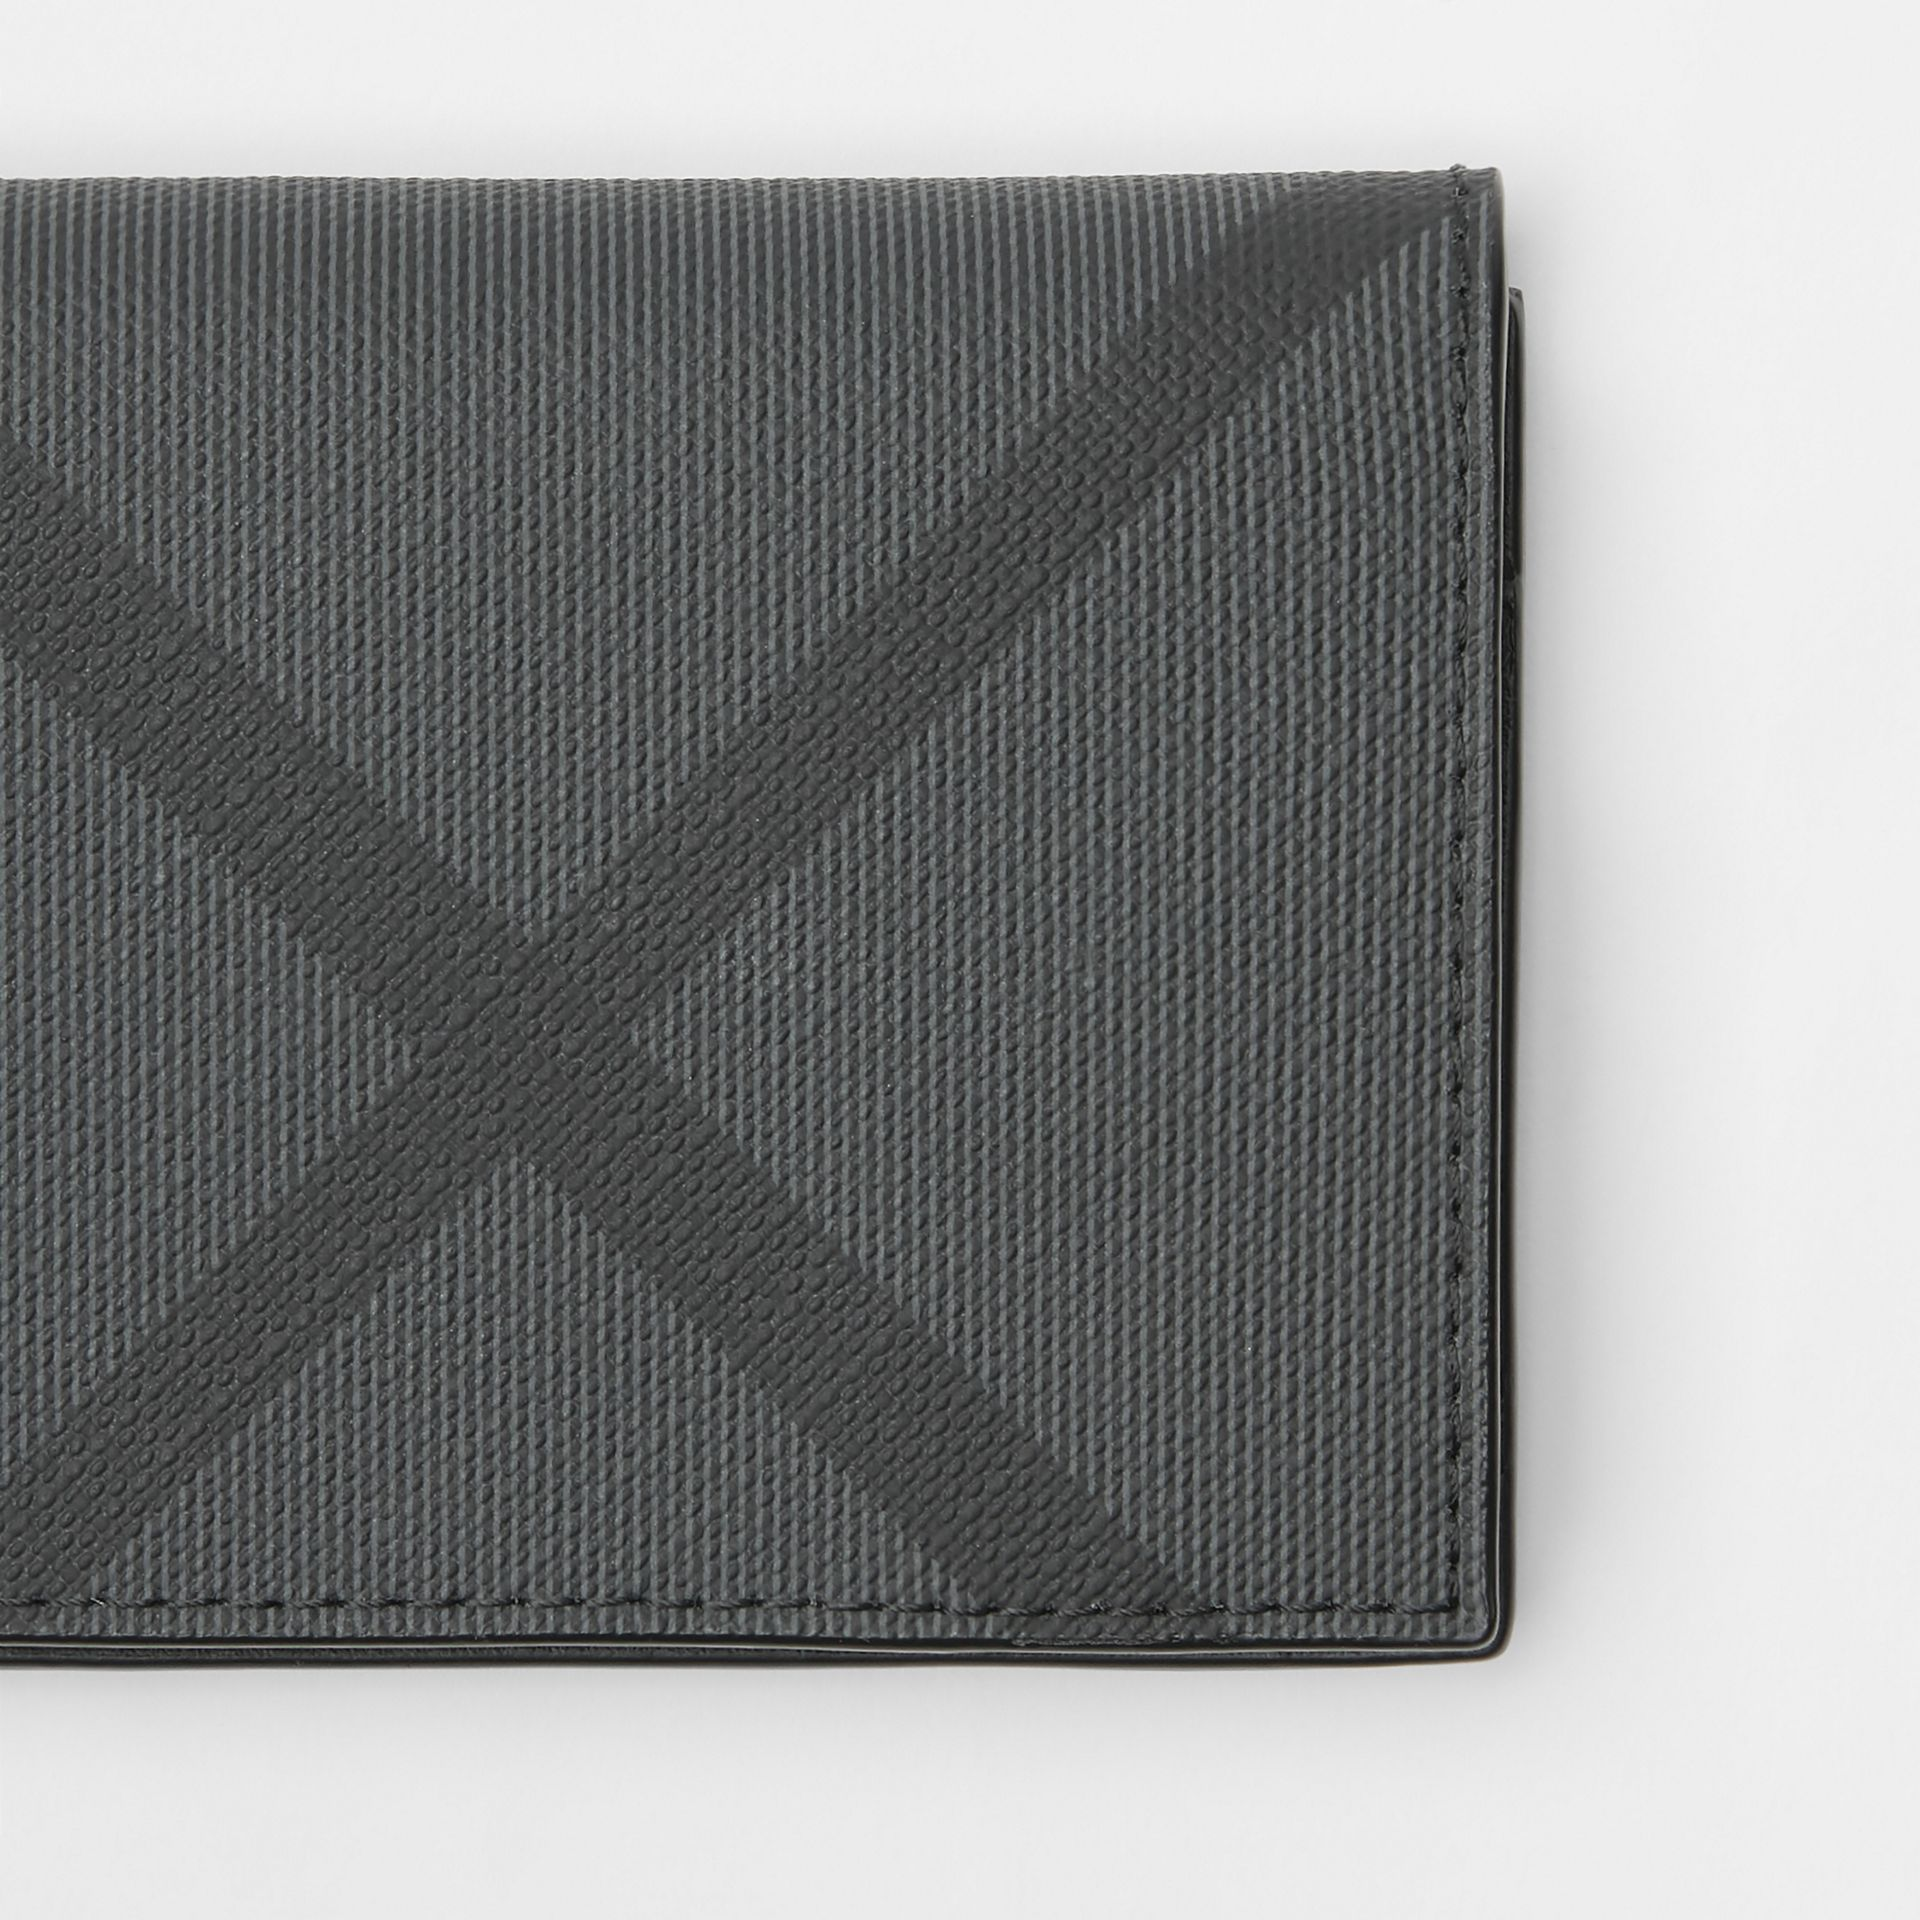 London Check and Leather Folding Card Case in Charcoal/black - Men | Burberry - gallery image 1